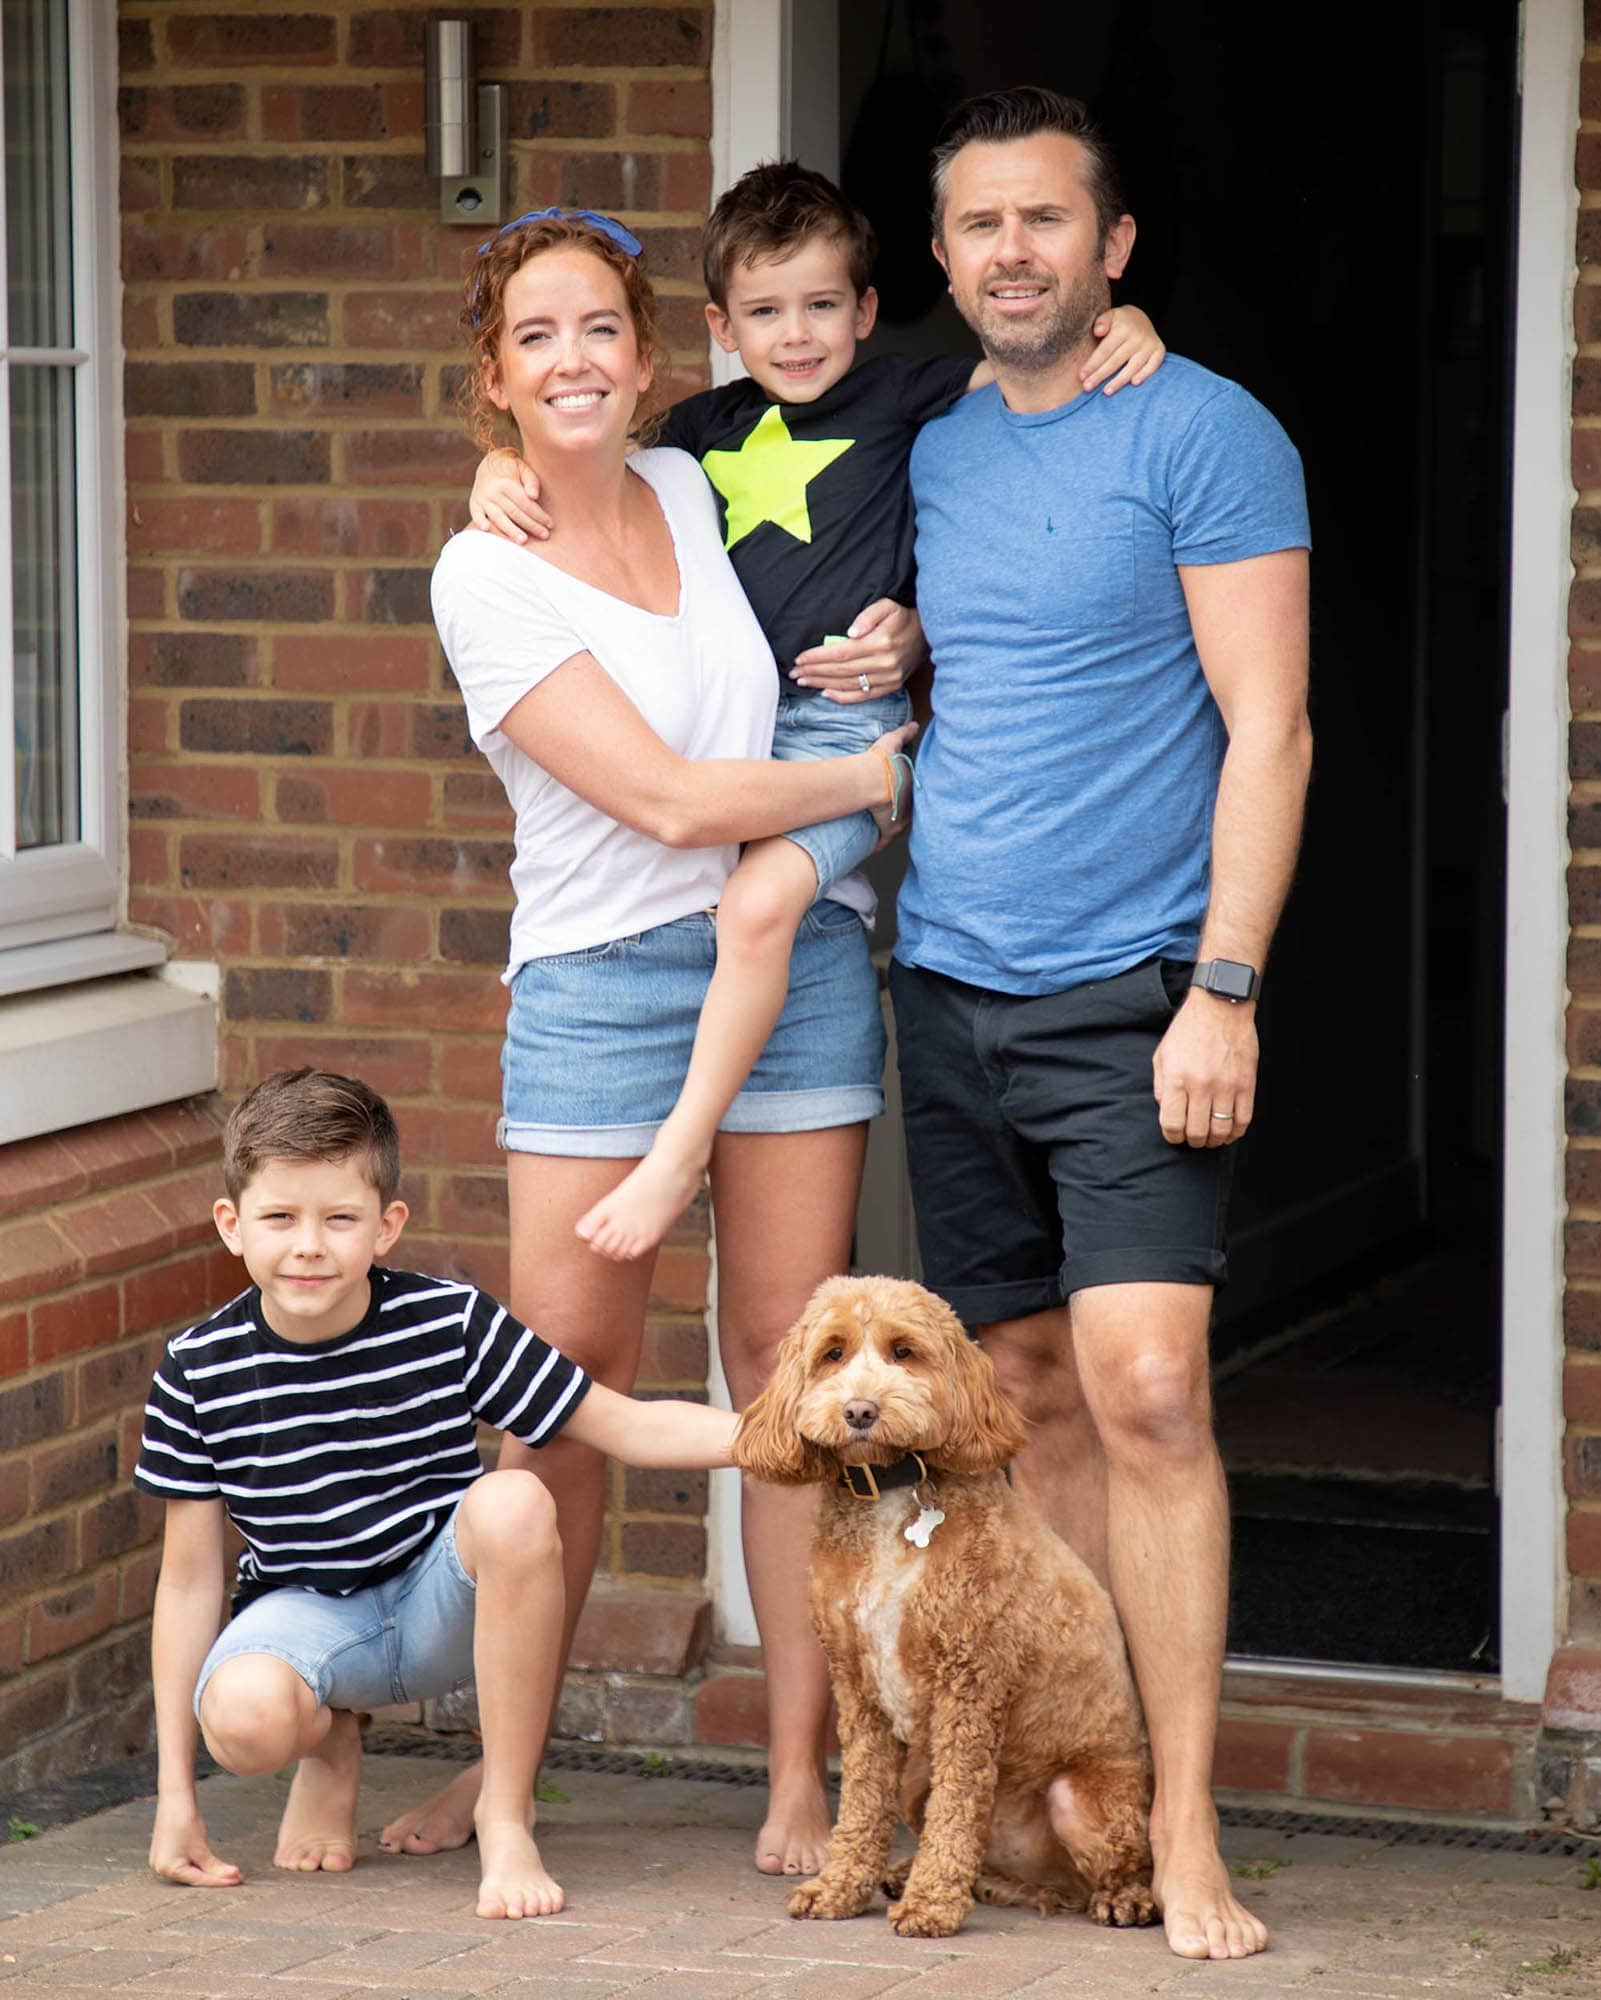 doorstep portrait family with 2 young boys and dog stood outside their house during photoshoot in haywards Heath